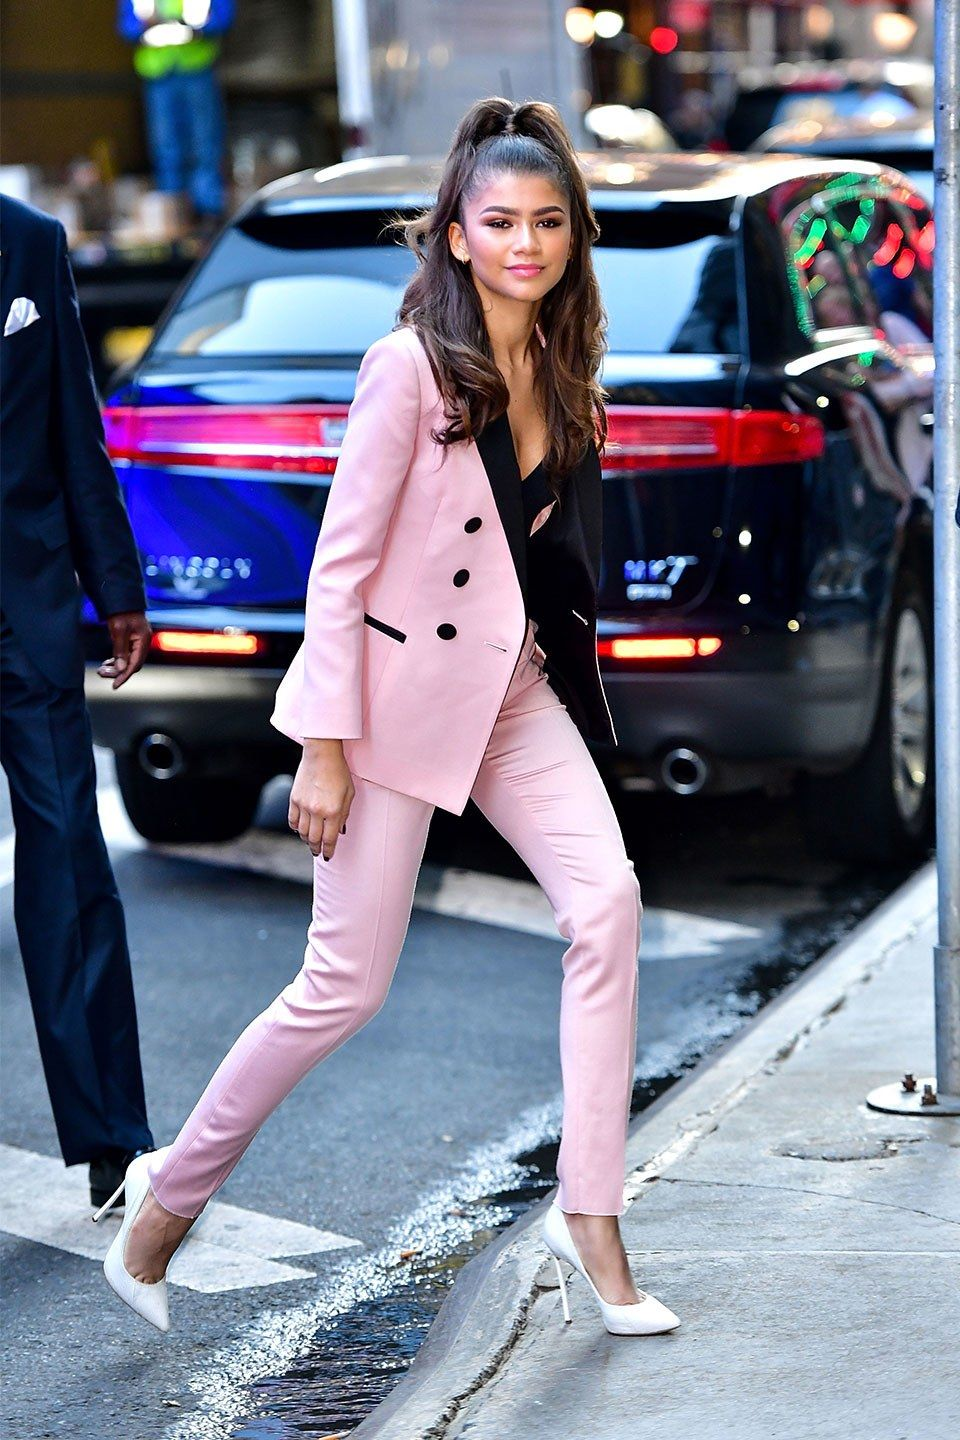 97fad6176eb  Zendaya Channels Business Barbie in Pink Suit by Dundas. Photo by James  Devaney. Zendaya is the latest to give her stamp of approval on the trend